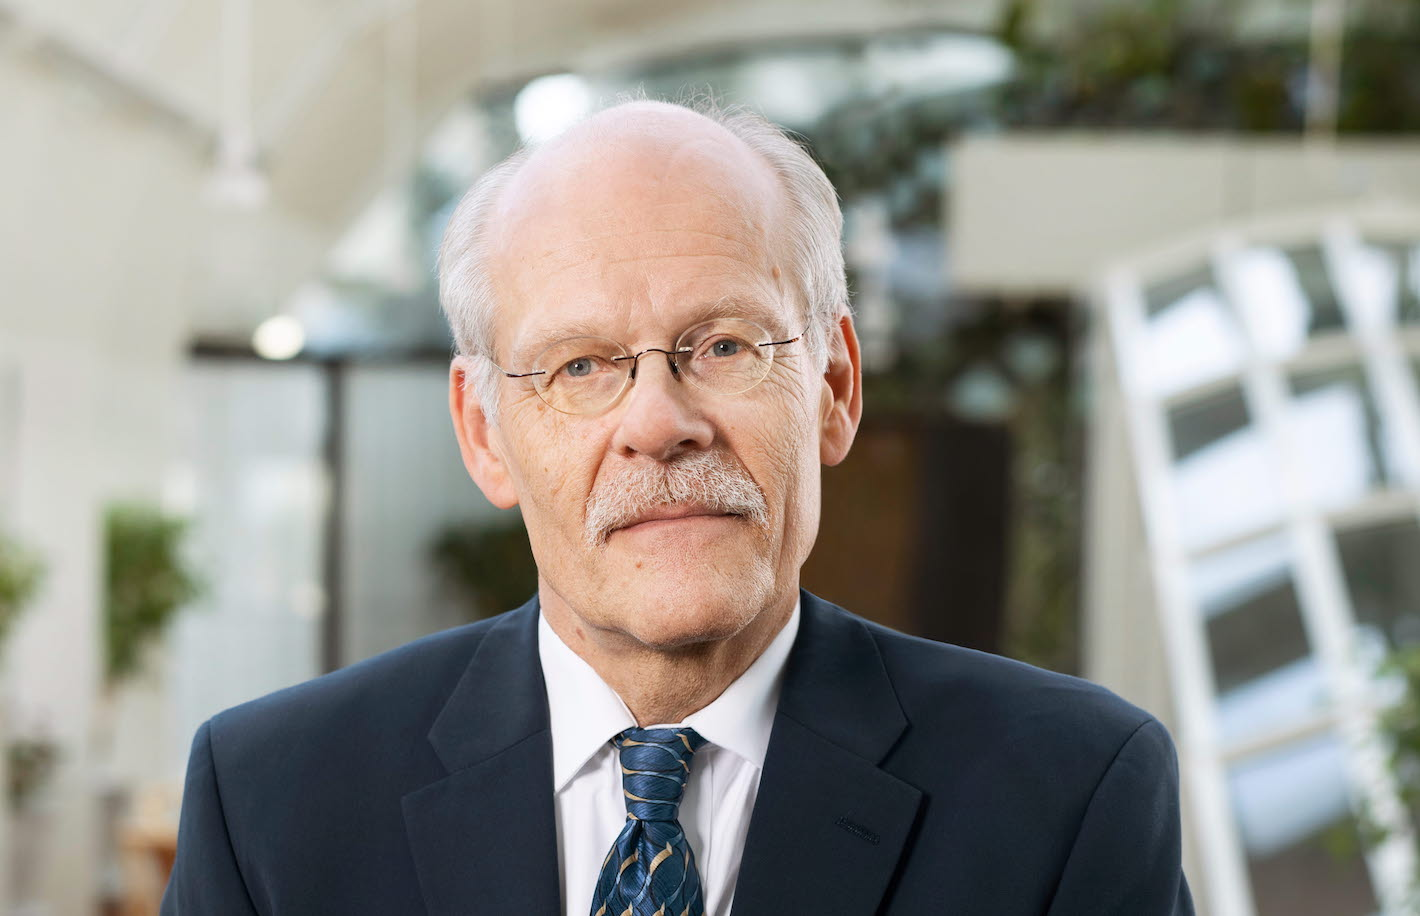 Riksbank Governor Sees Good Reason to Believe Regulation of Crypto Will Happen